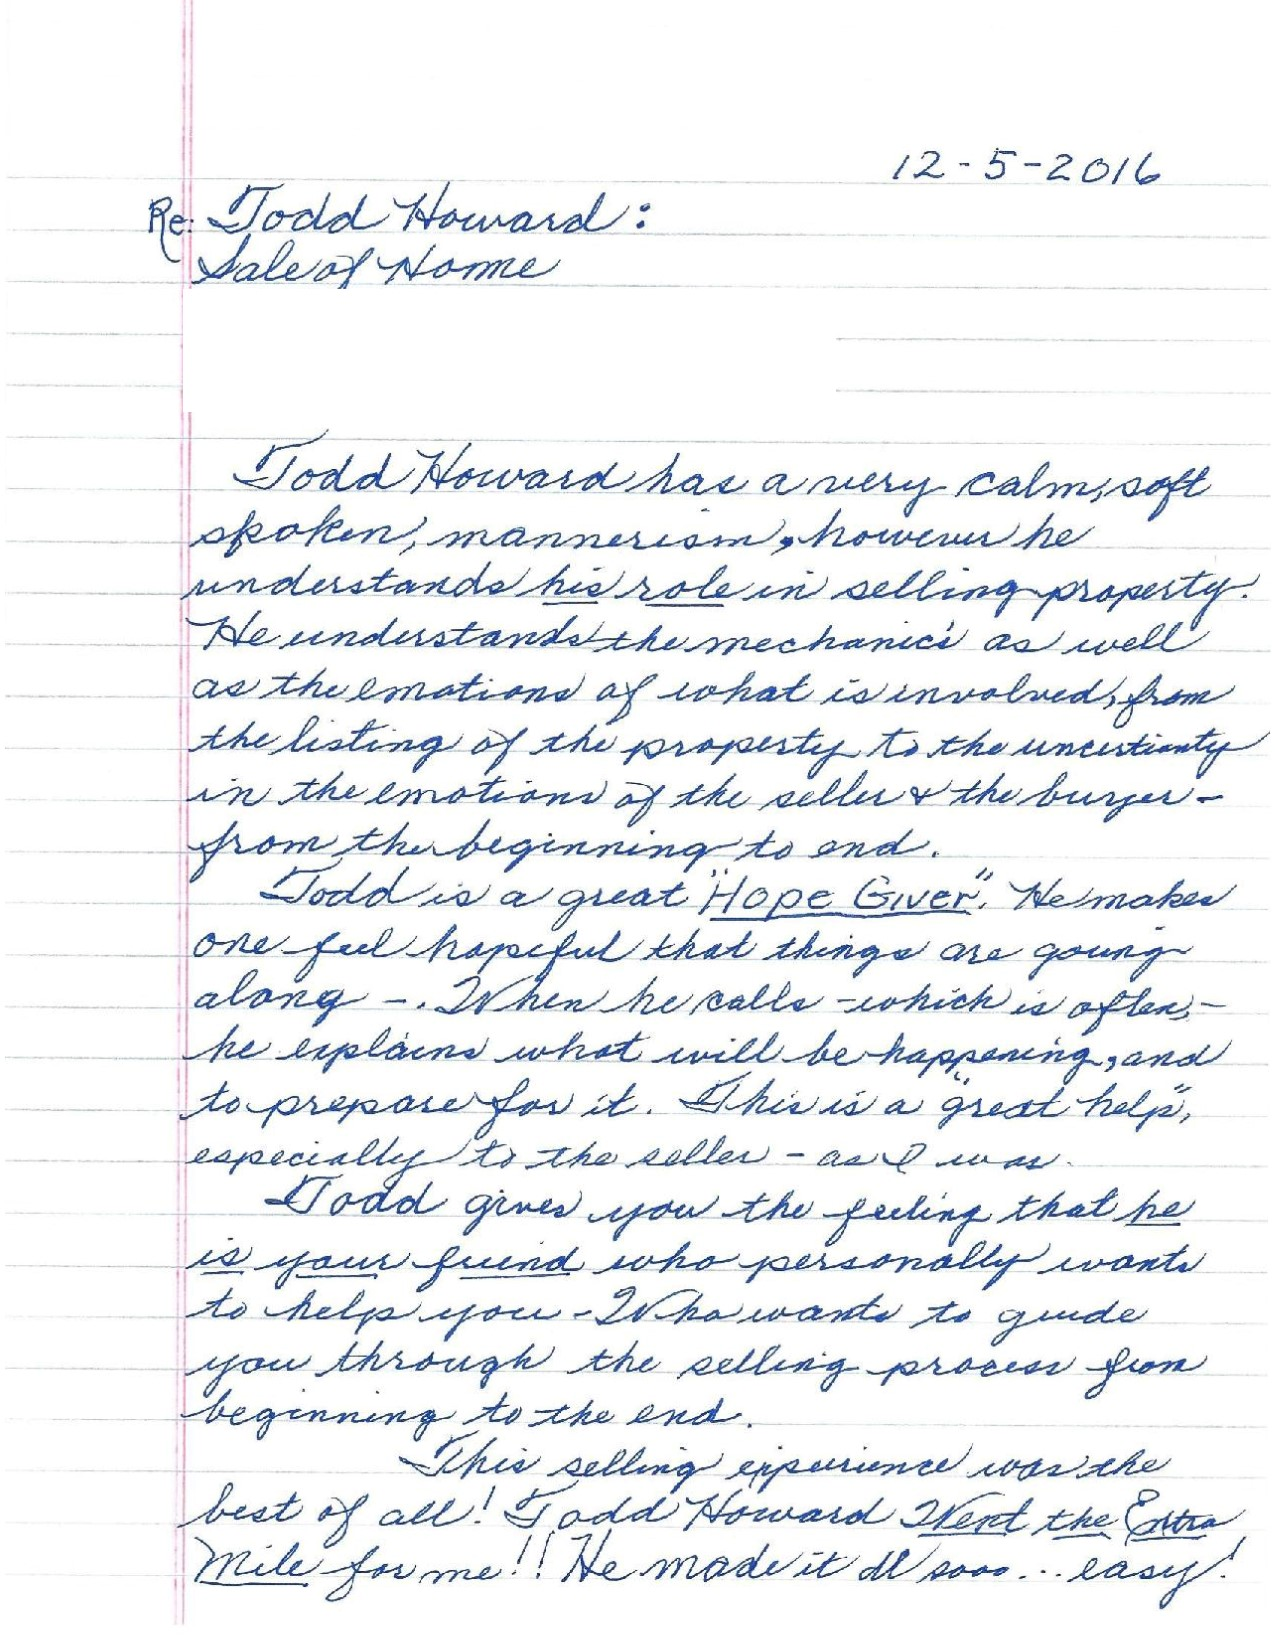 Testimonial letter from Senior Client Regarding Sale of Home